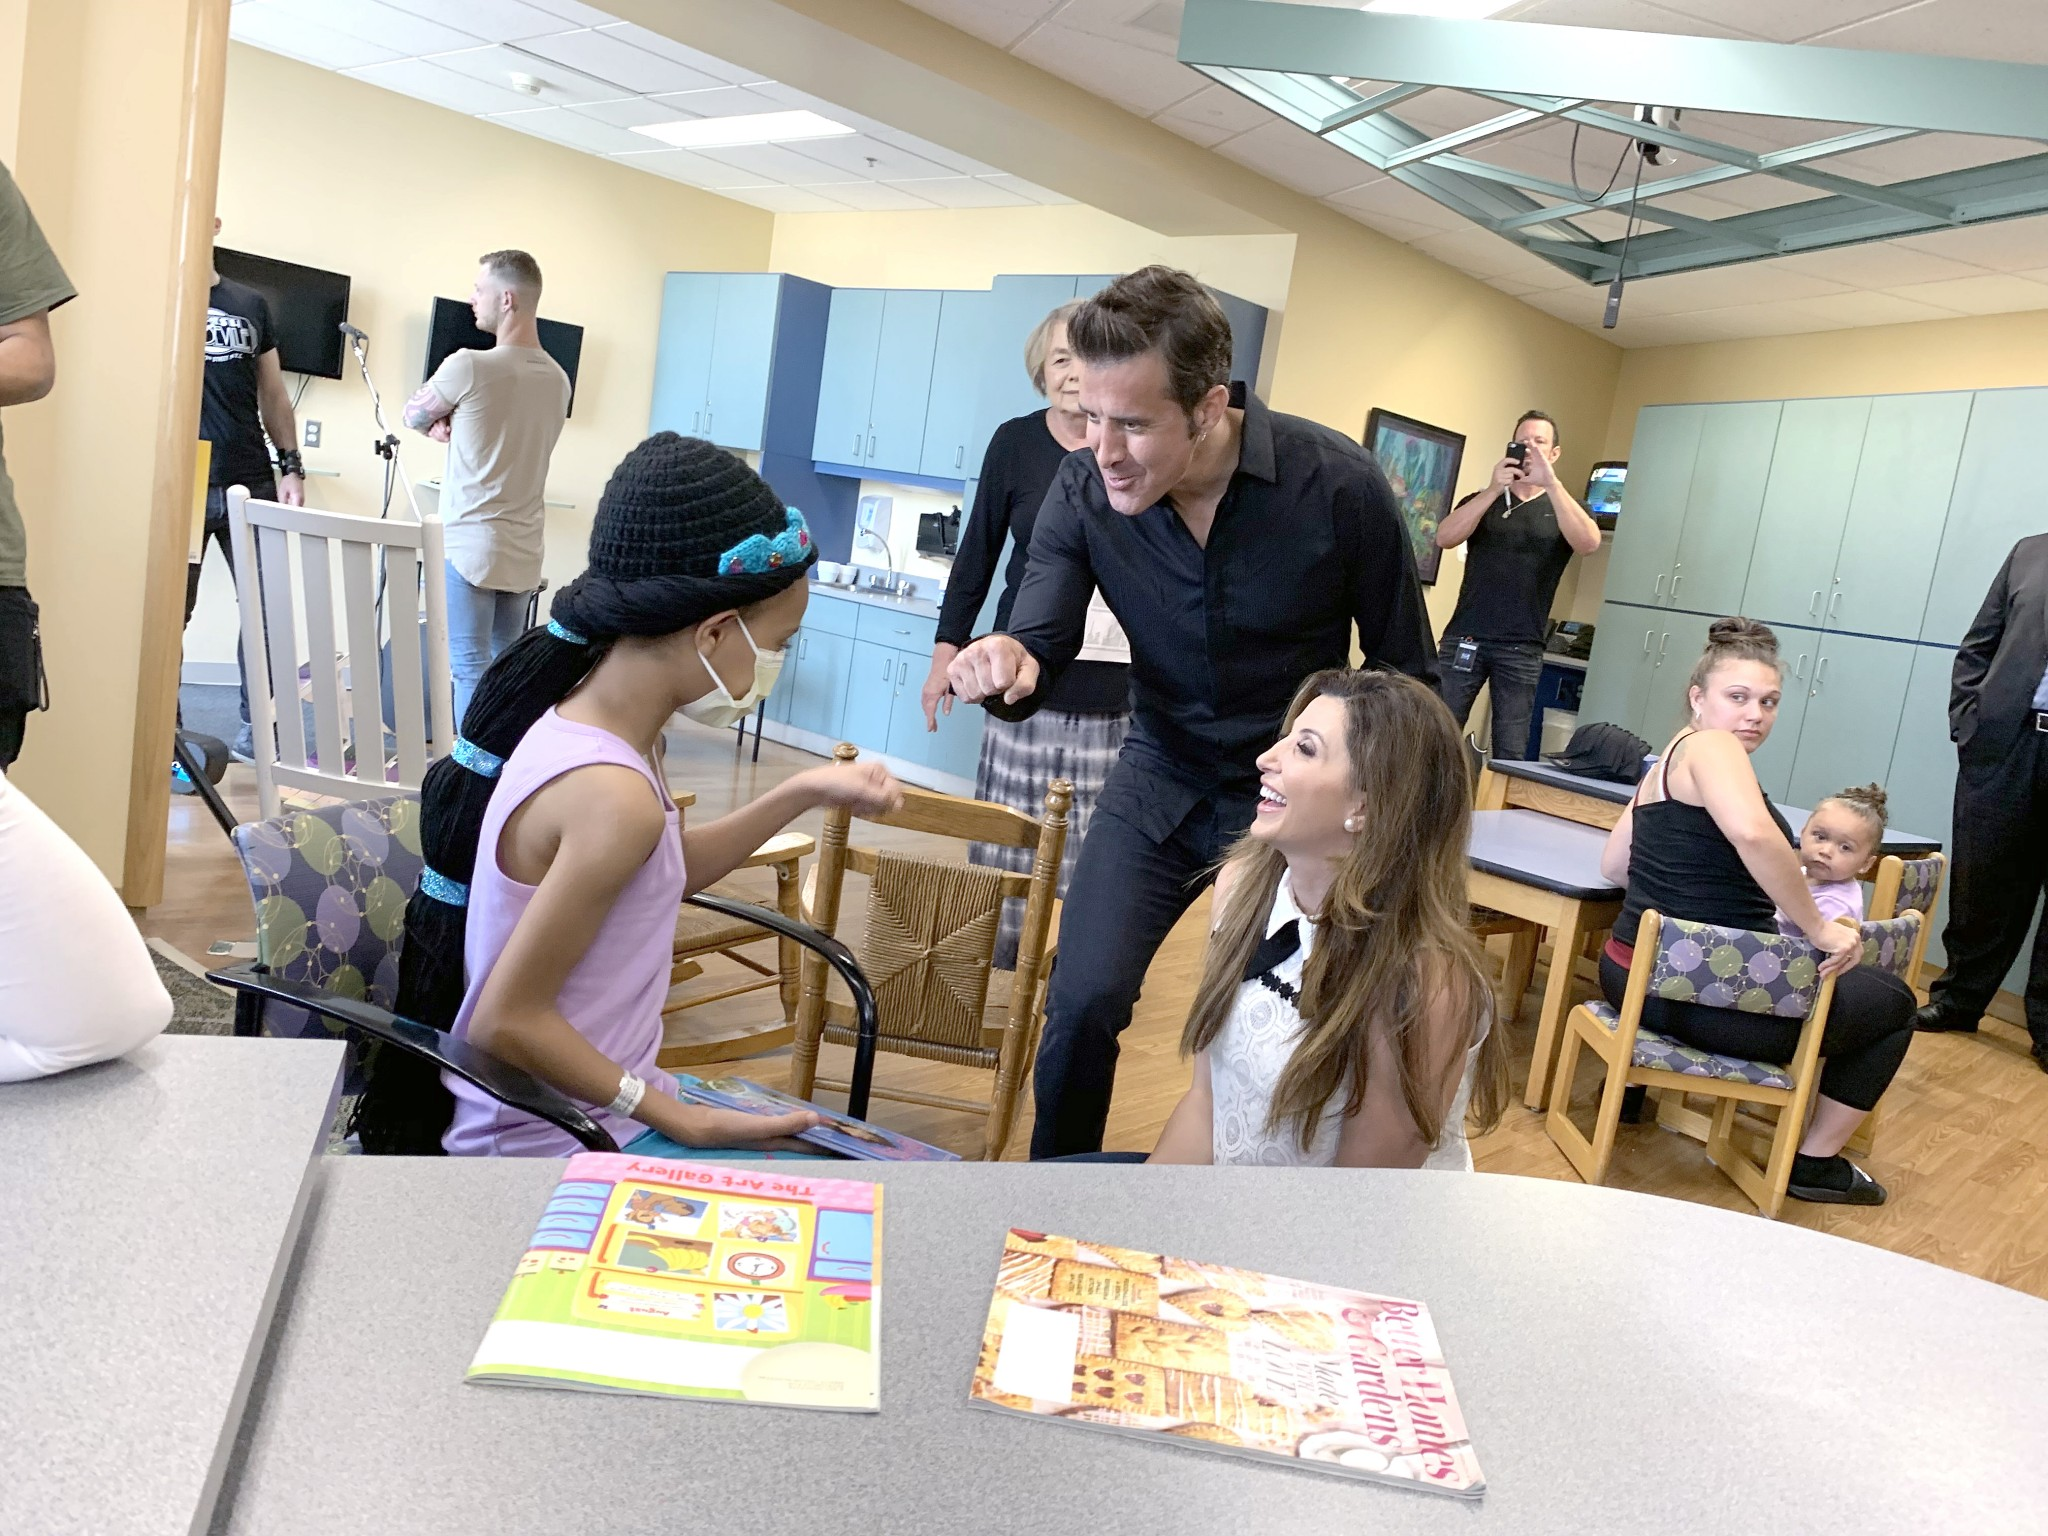 Singer Scott Stapp and his wife, Jaclyn, visit with a patient at Mercy Health – Children's Hospital on June 28. Stapp was in Toledo for a concert at Civic Music Hall. (Photo by Jeff Ziviski)